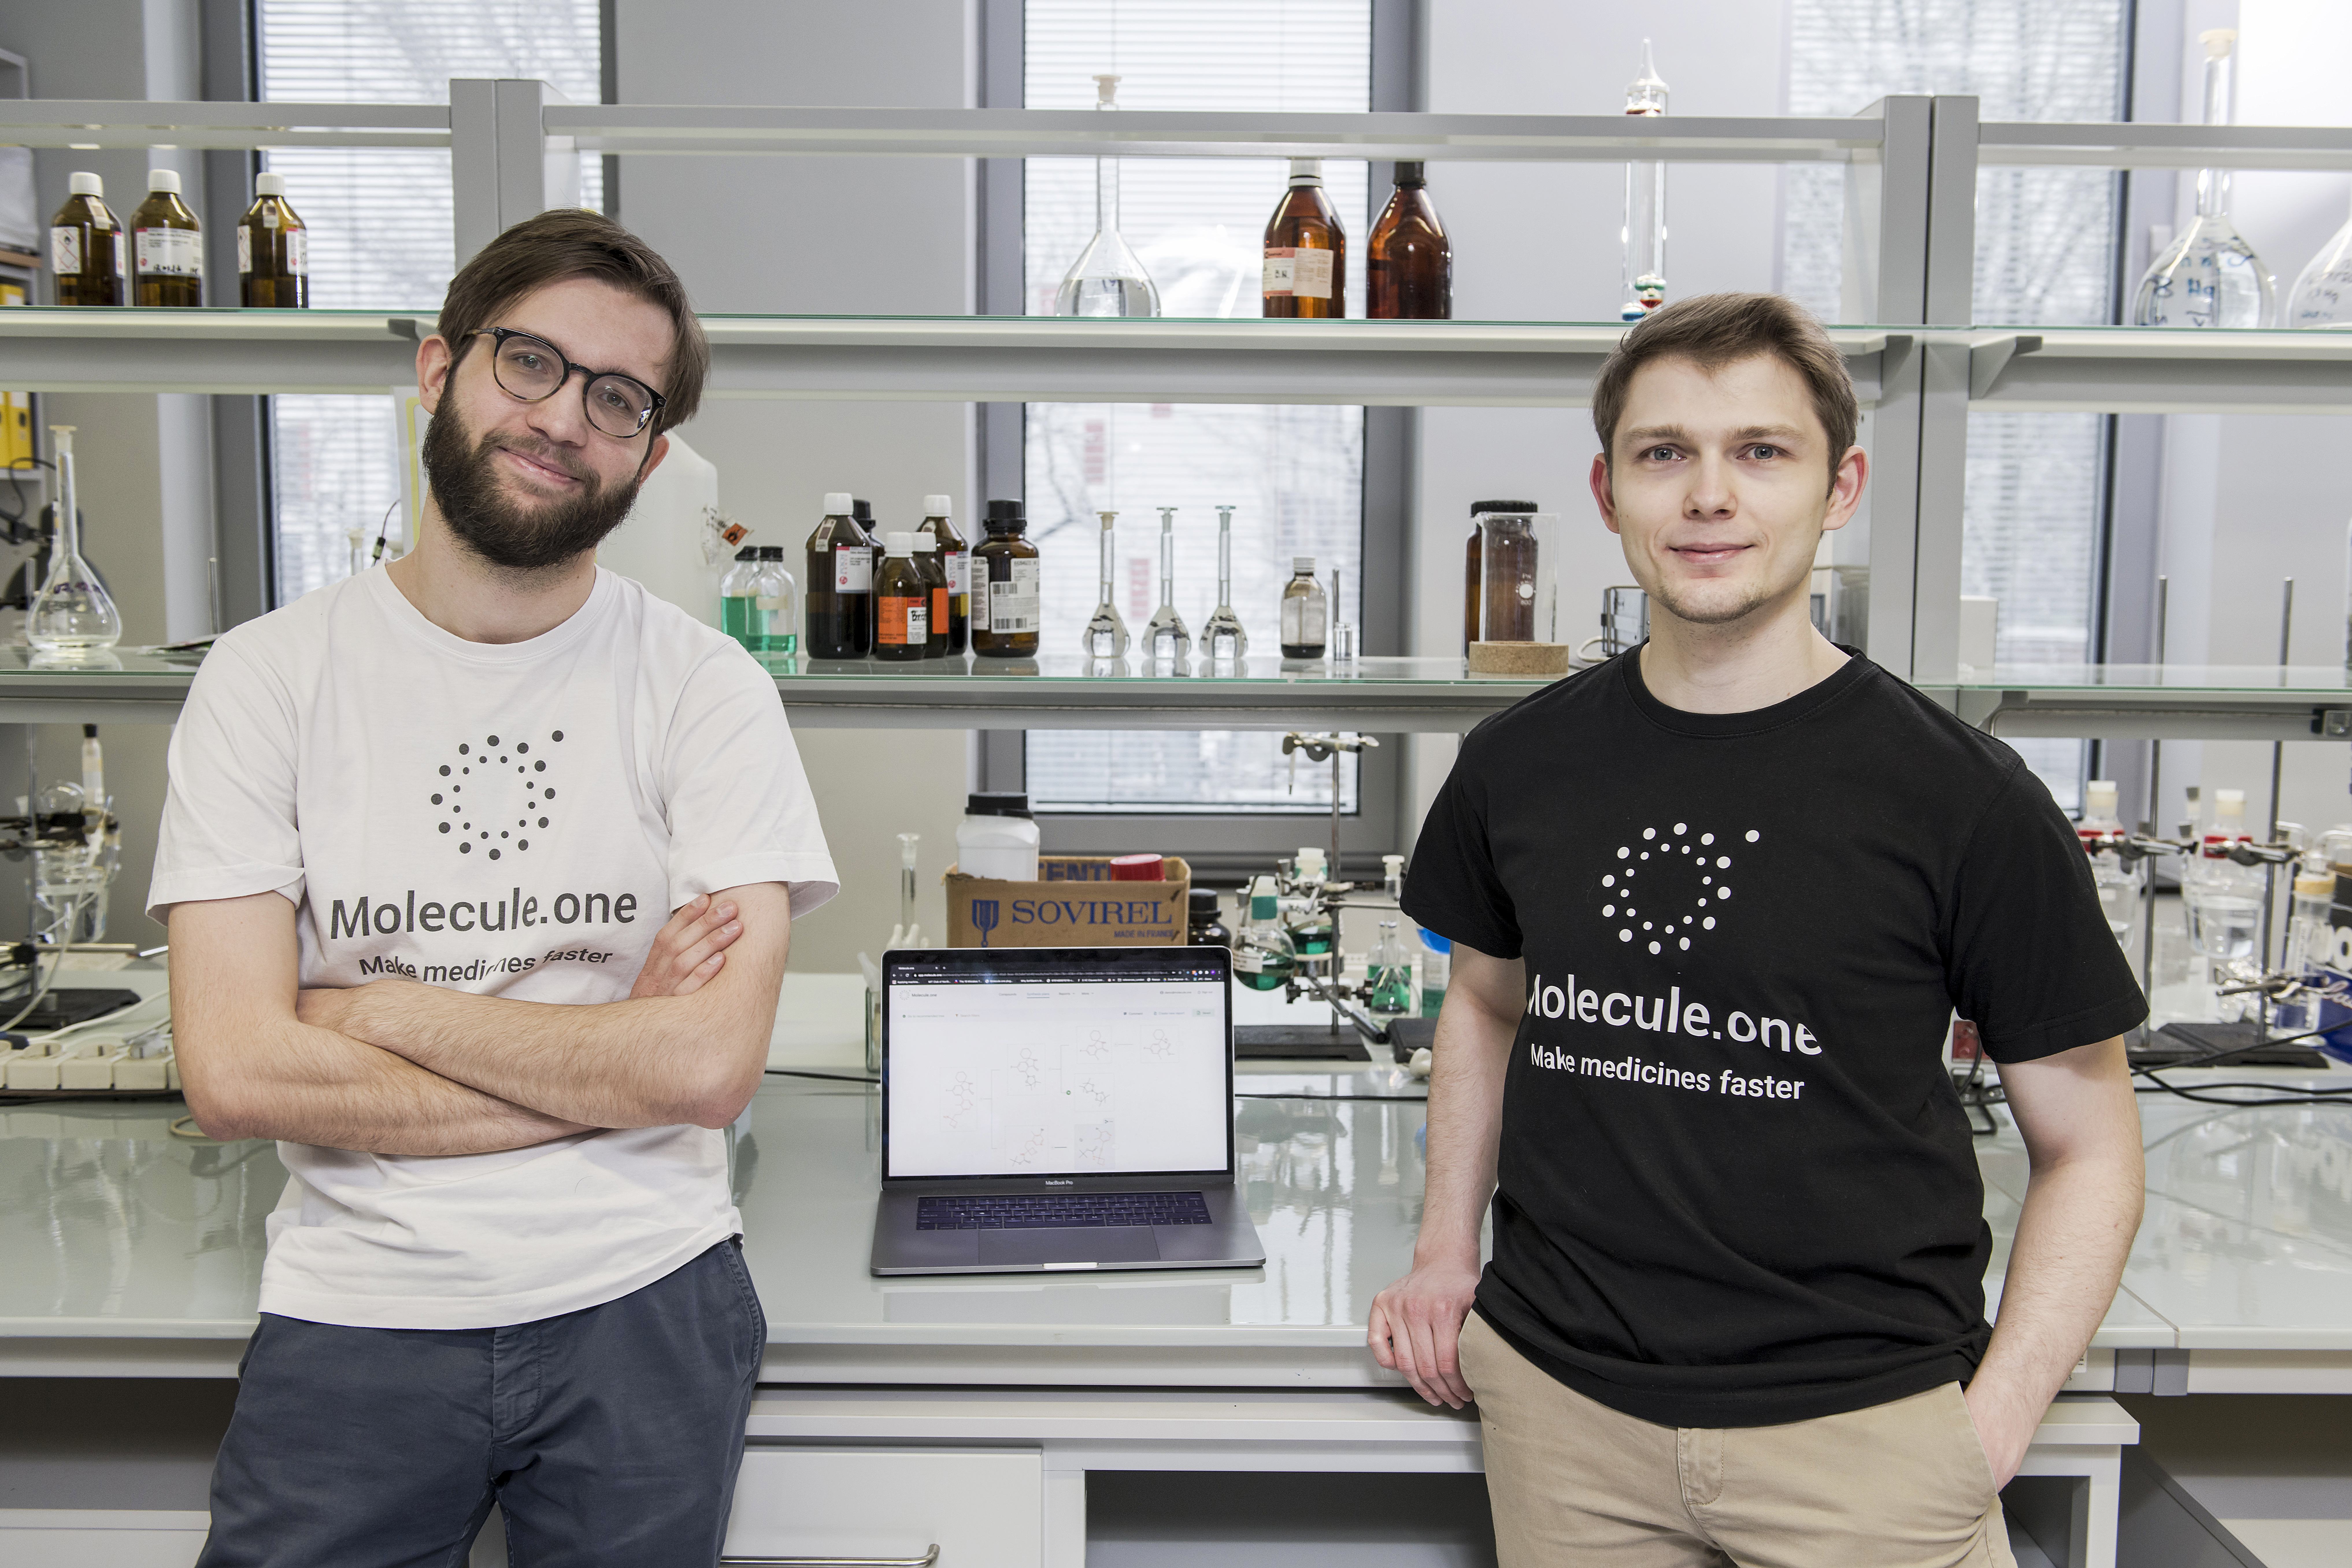 Molecule.one Raises $4.6million To Further Advance Its Pioneering Synthesis Planning Technology For Faster Drug Discovery